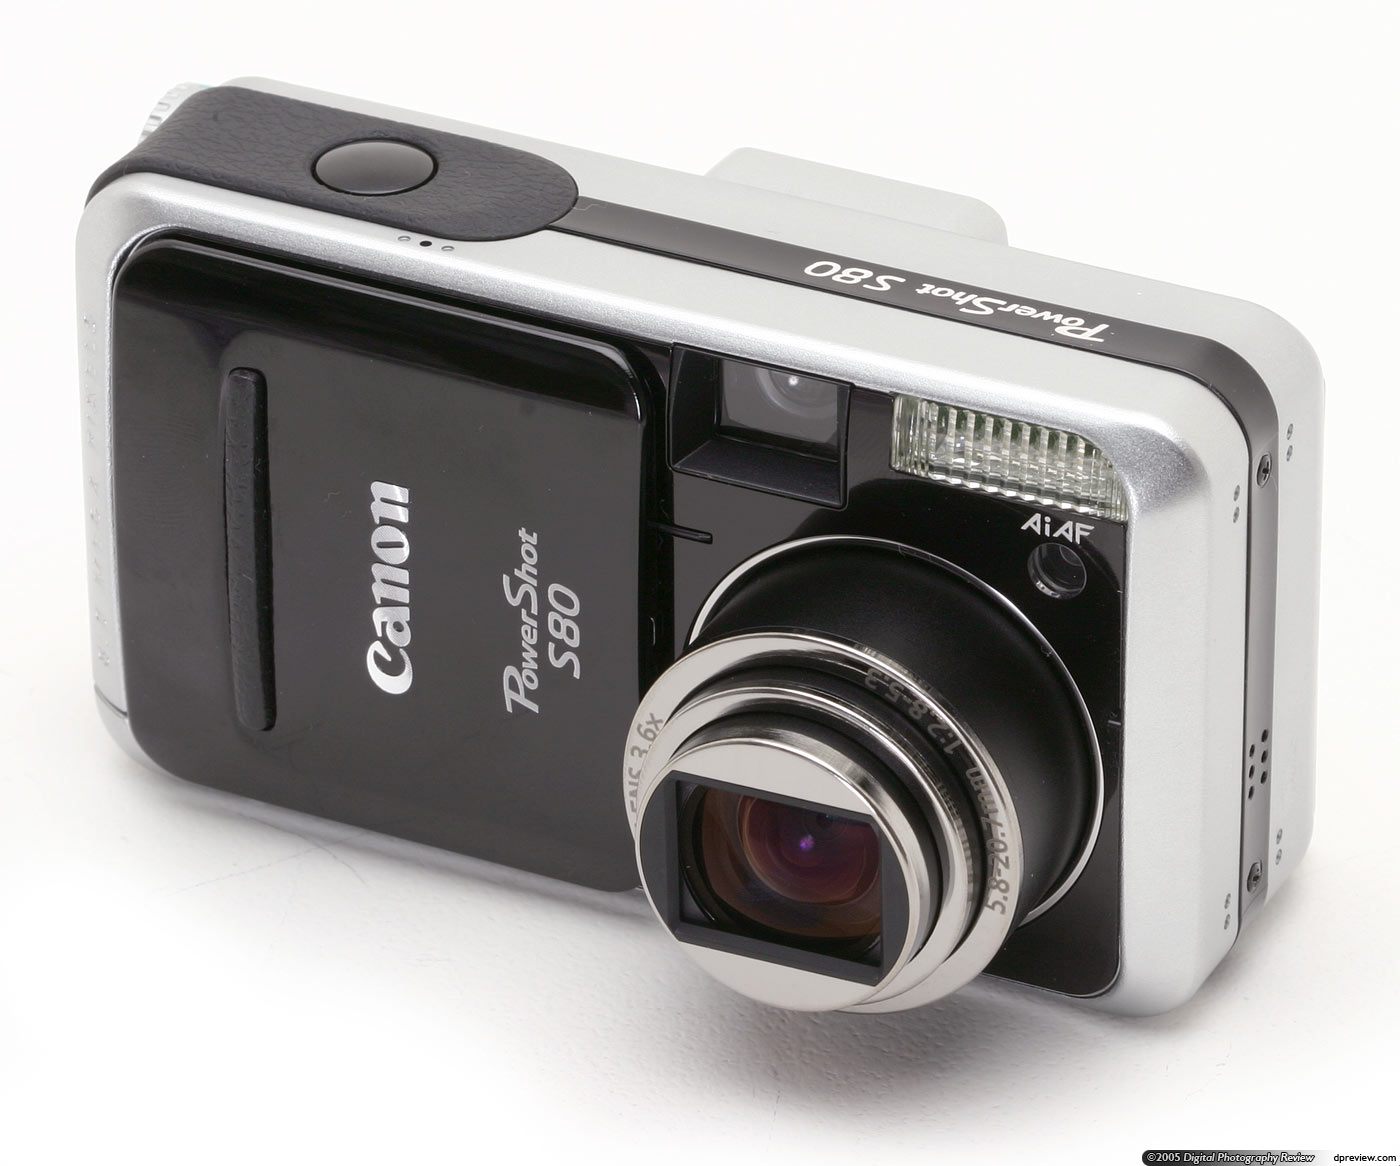 canon powershot s80 review digital photography review rh dpreview com Canon SX30IS User Manual Canon PowerShot Camera Manual